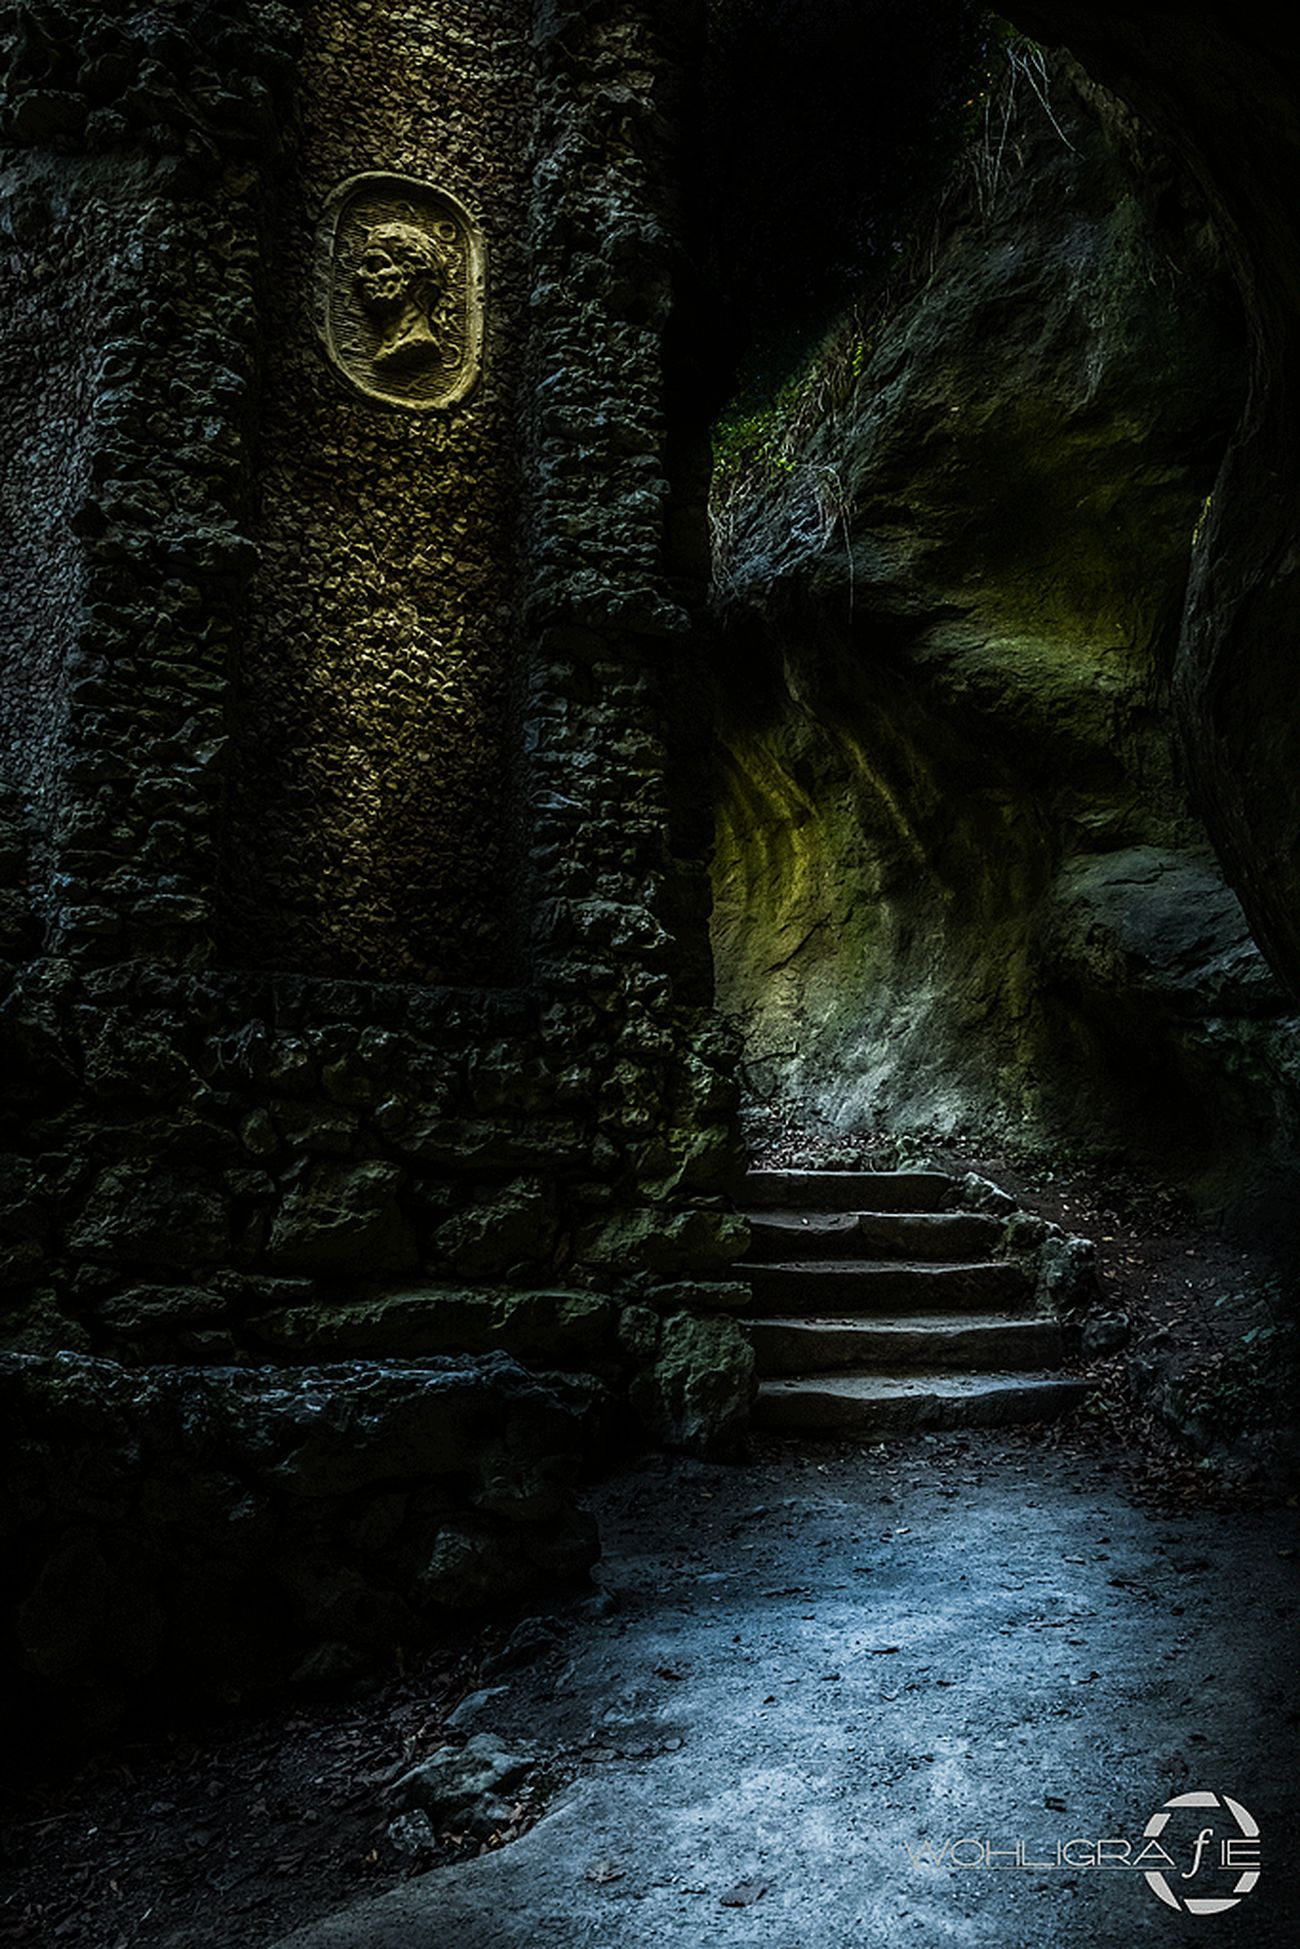 Dark ways Steps The Way Forward Stone Stone Material Tranquil Scene No People Mystyle Lightroom Mystical Atmosphere Spooky Atmosphere Mystic Nature Taking Photos Hanging Out Outdoors Ancient Civilization Bad Condition Weathered Ancient The Past Historic Architecture Built Structure